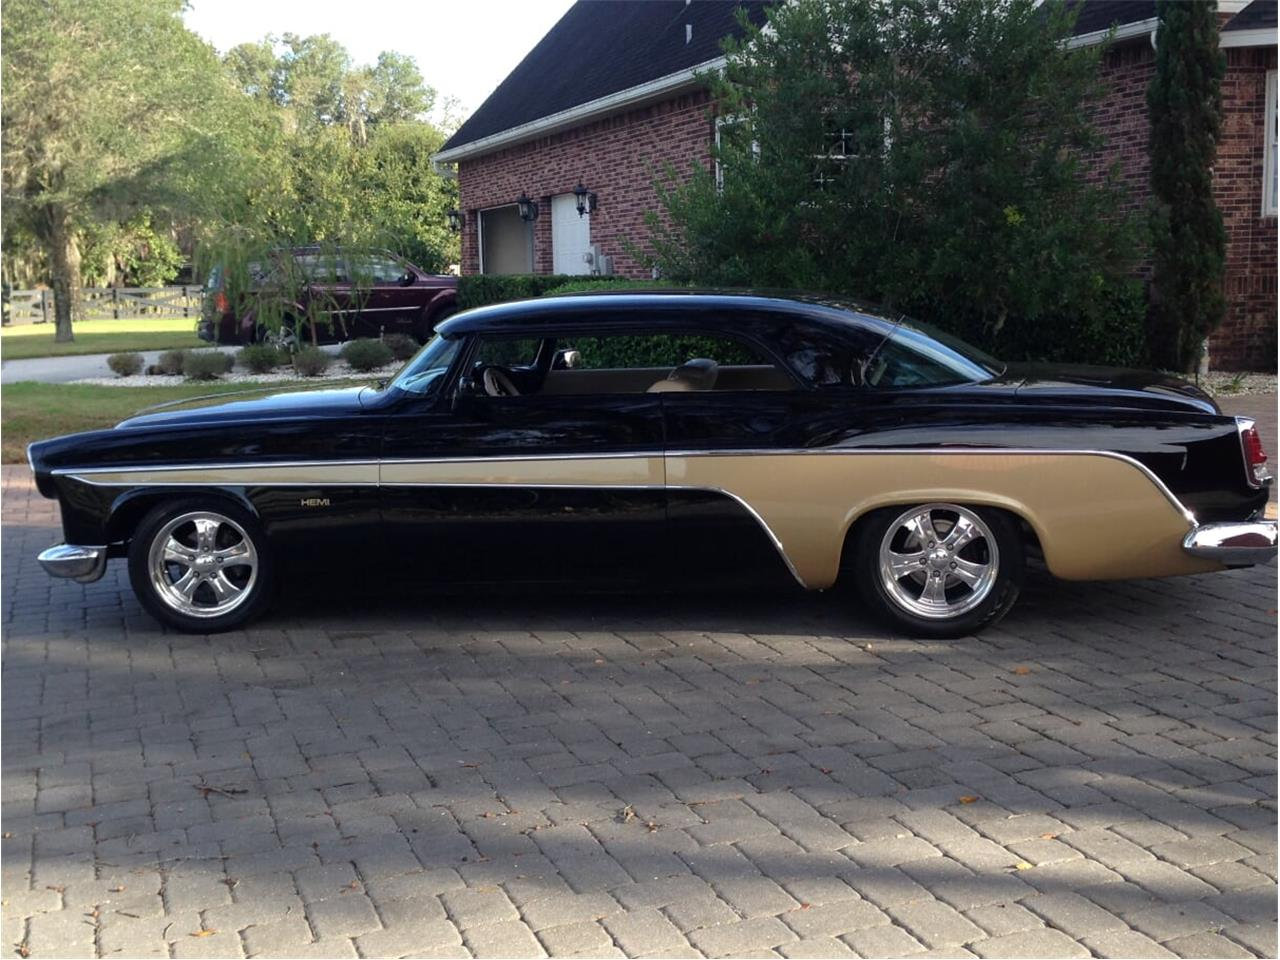 Large Picture of Classic 1955 DeSoto Fireflite located in Pennsylvania - $125,000.00 - LBPL